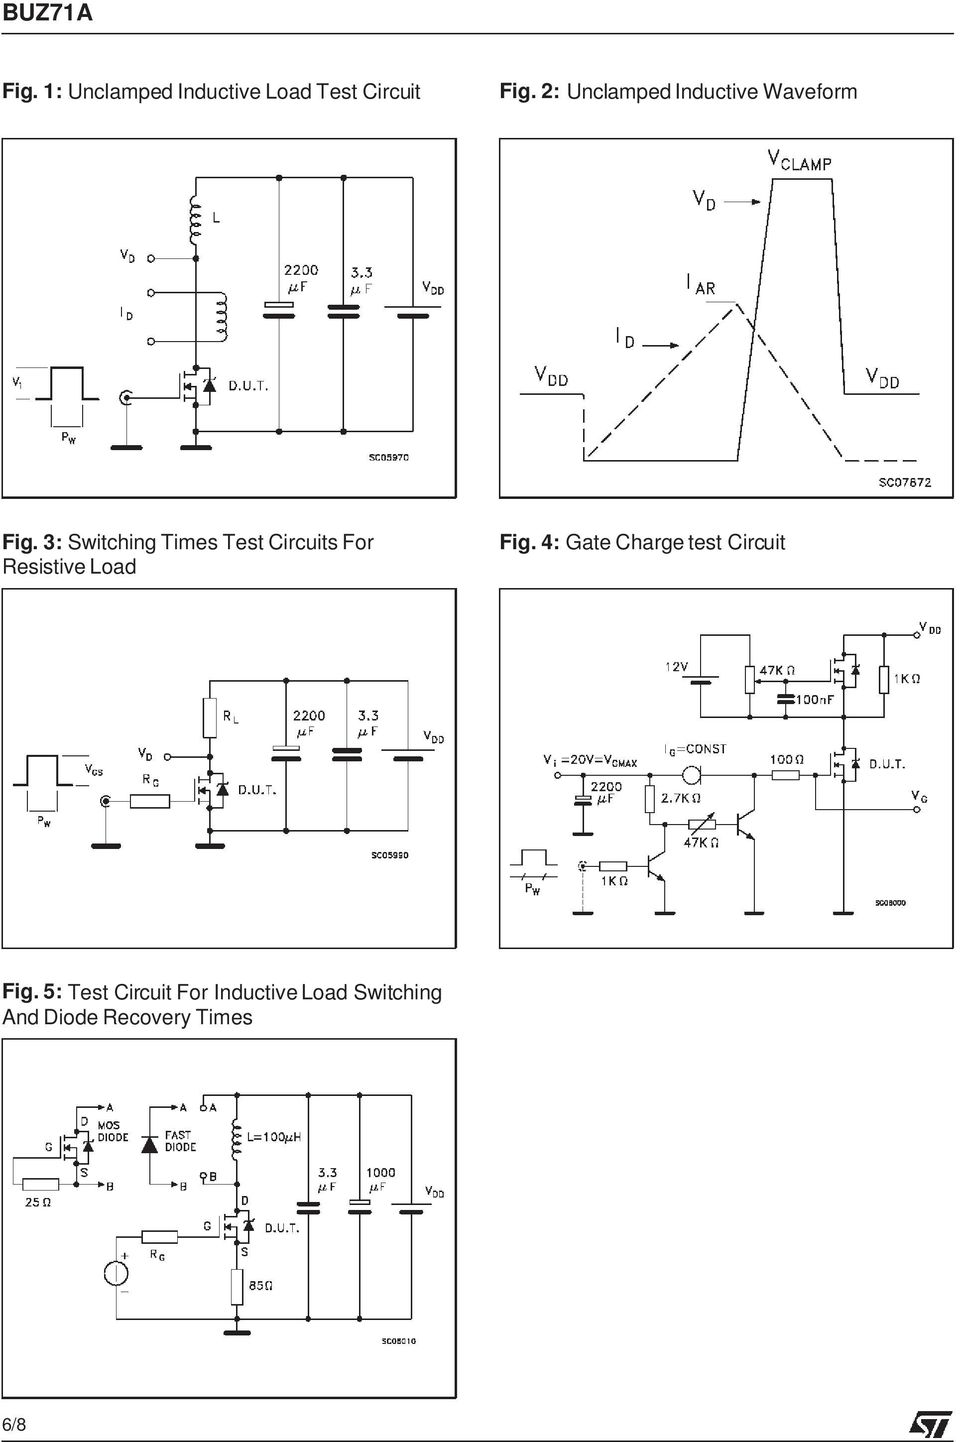 3: Switching Times Test Circuits For Resistive Load Fig.